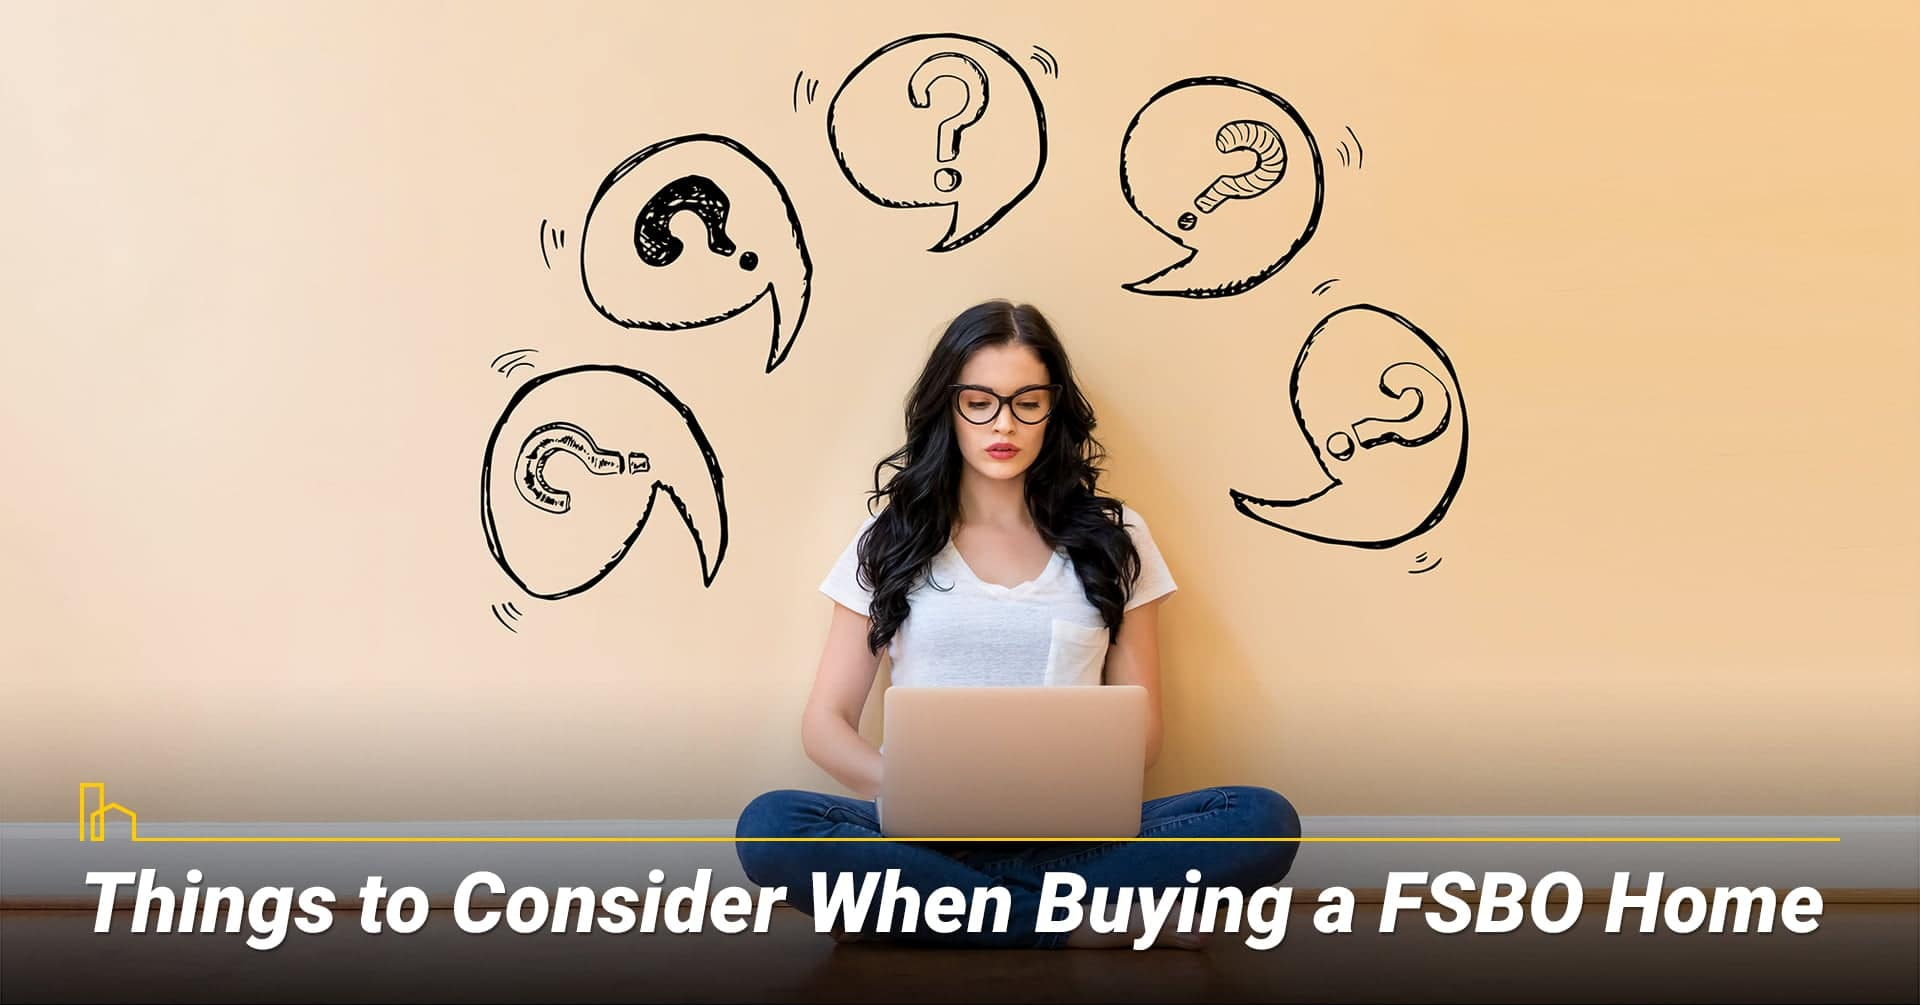 Things to Consider When Buying a FSBO Home, questions you have when buying a FSBO home